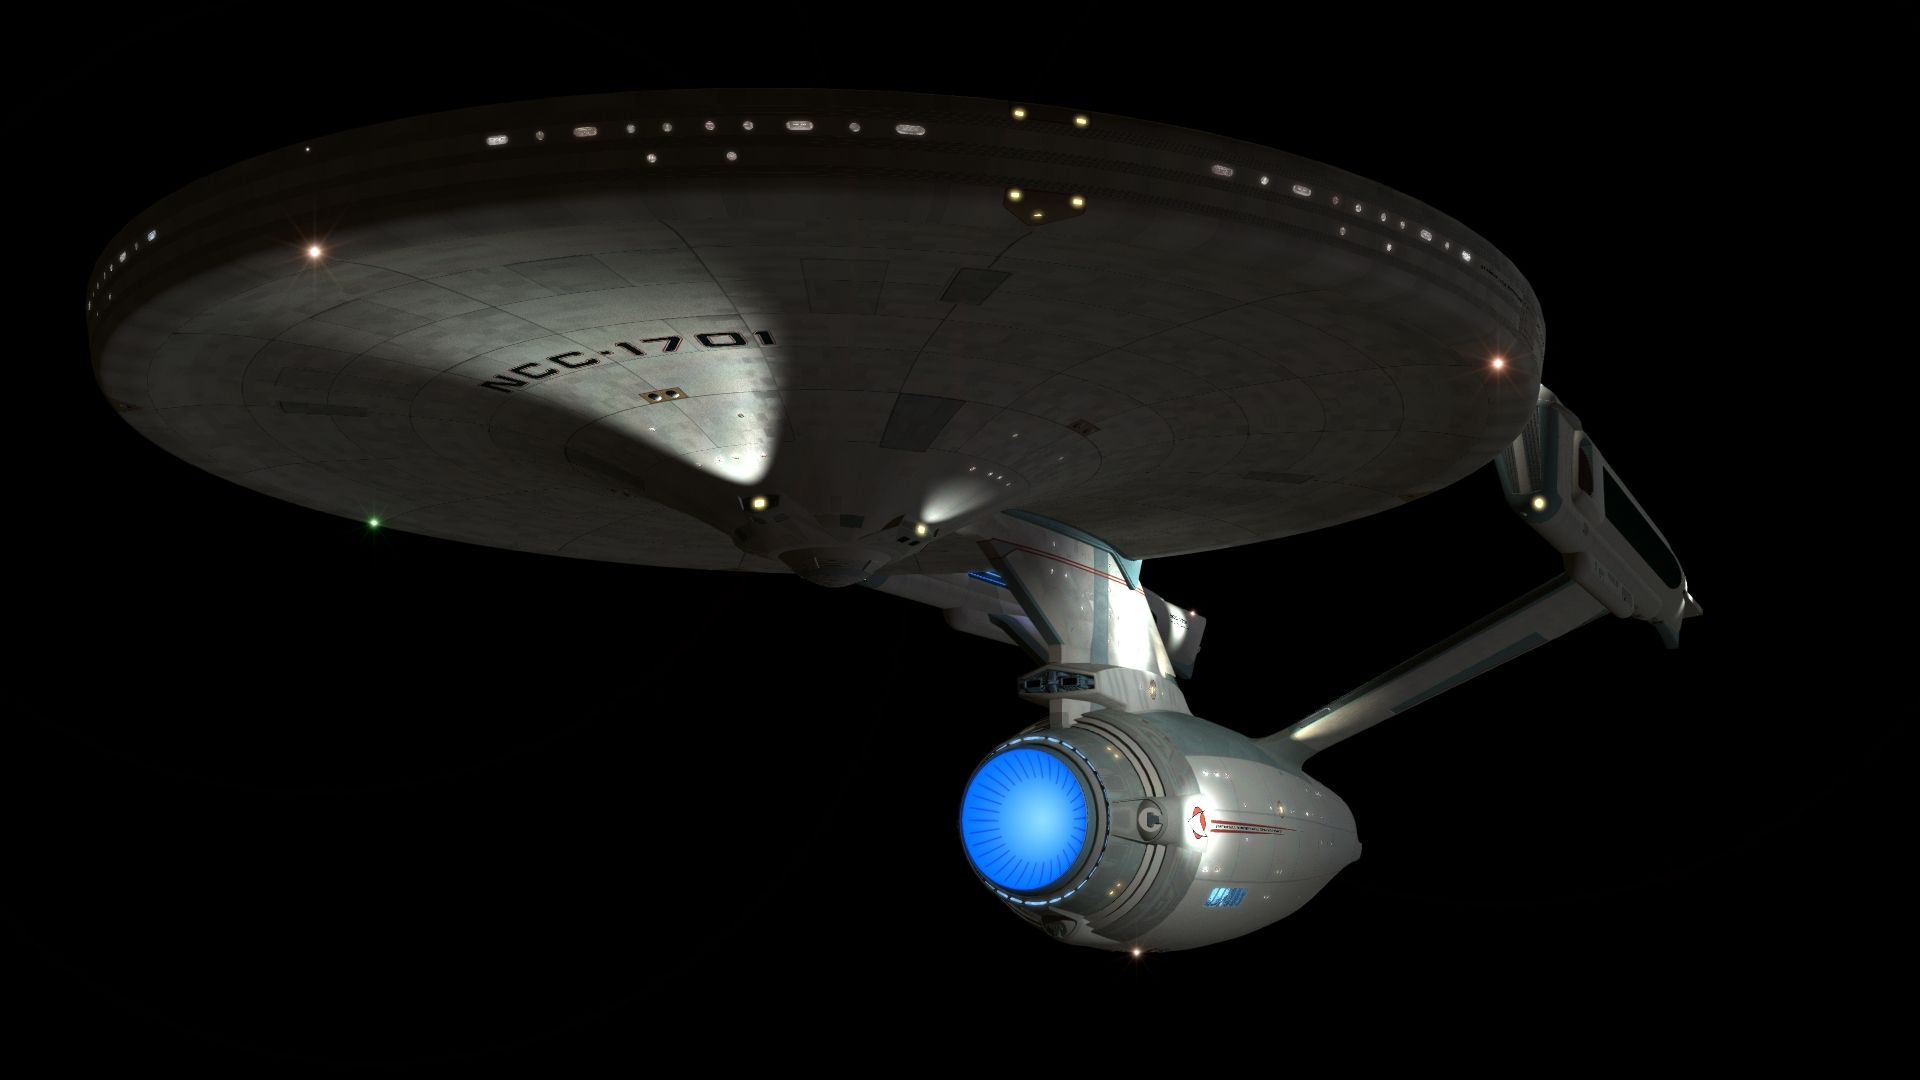 Star Trek USS Enterprise Wallpaper